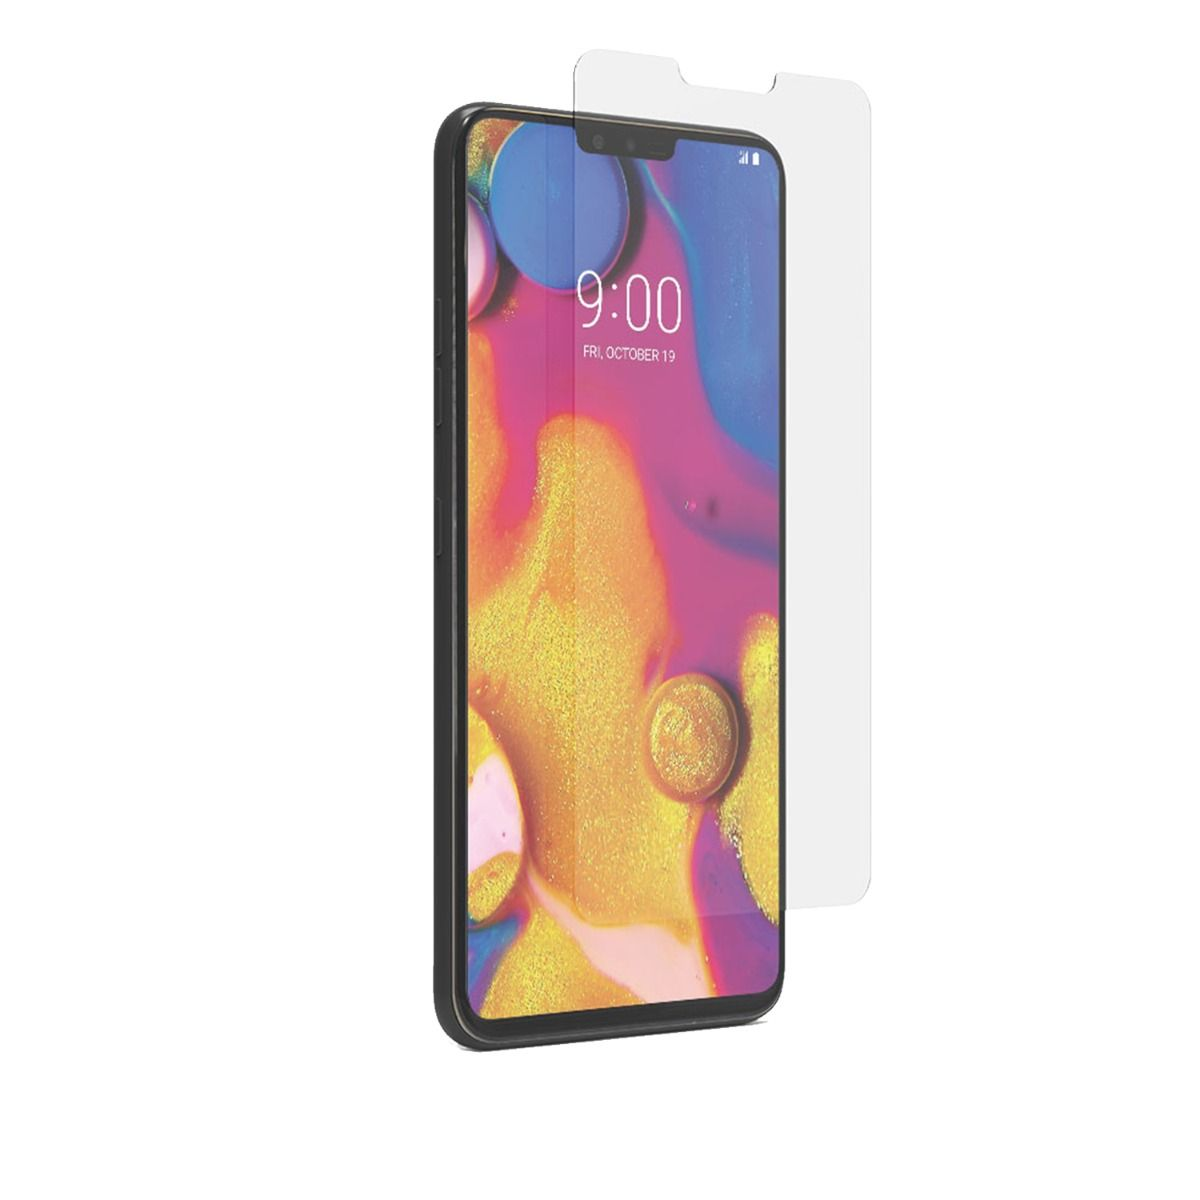 LG V40 ThinQ High-Definition Glass Screen Protector with Alignment Tray